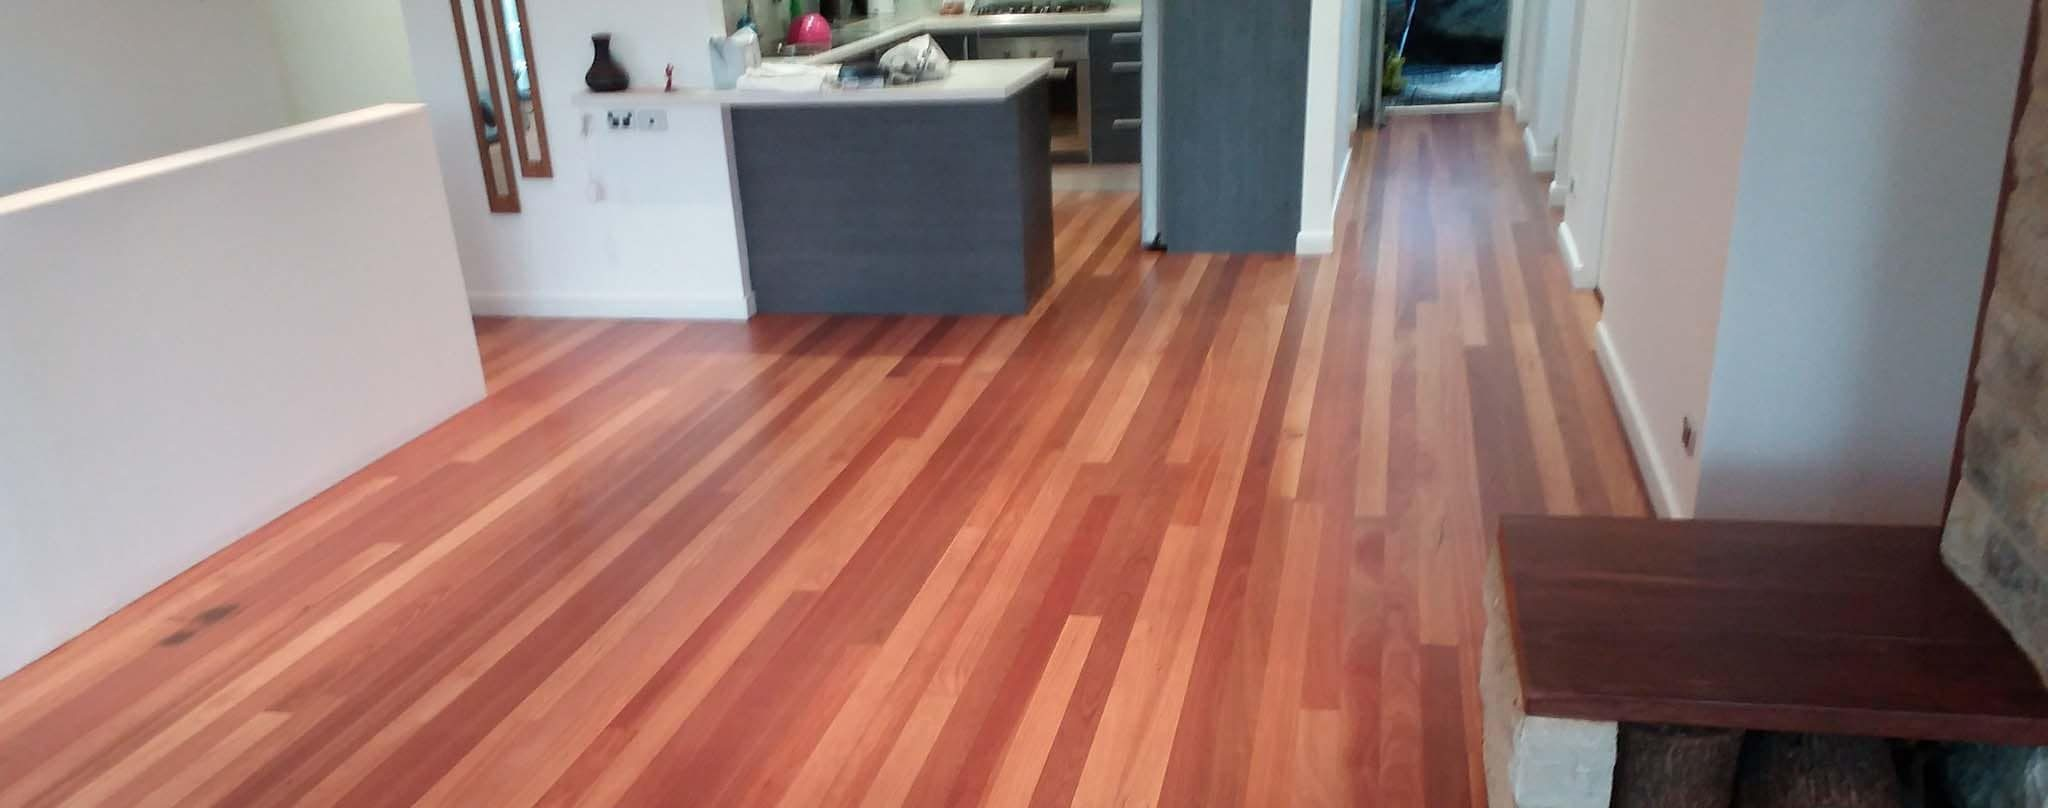 Kitchen Timber Floorboard Installation and Finish